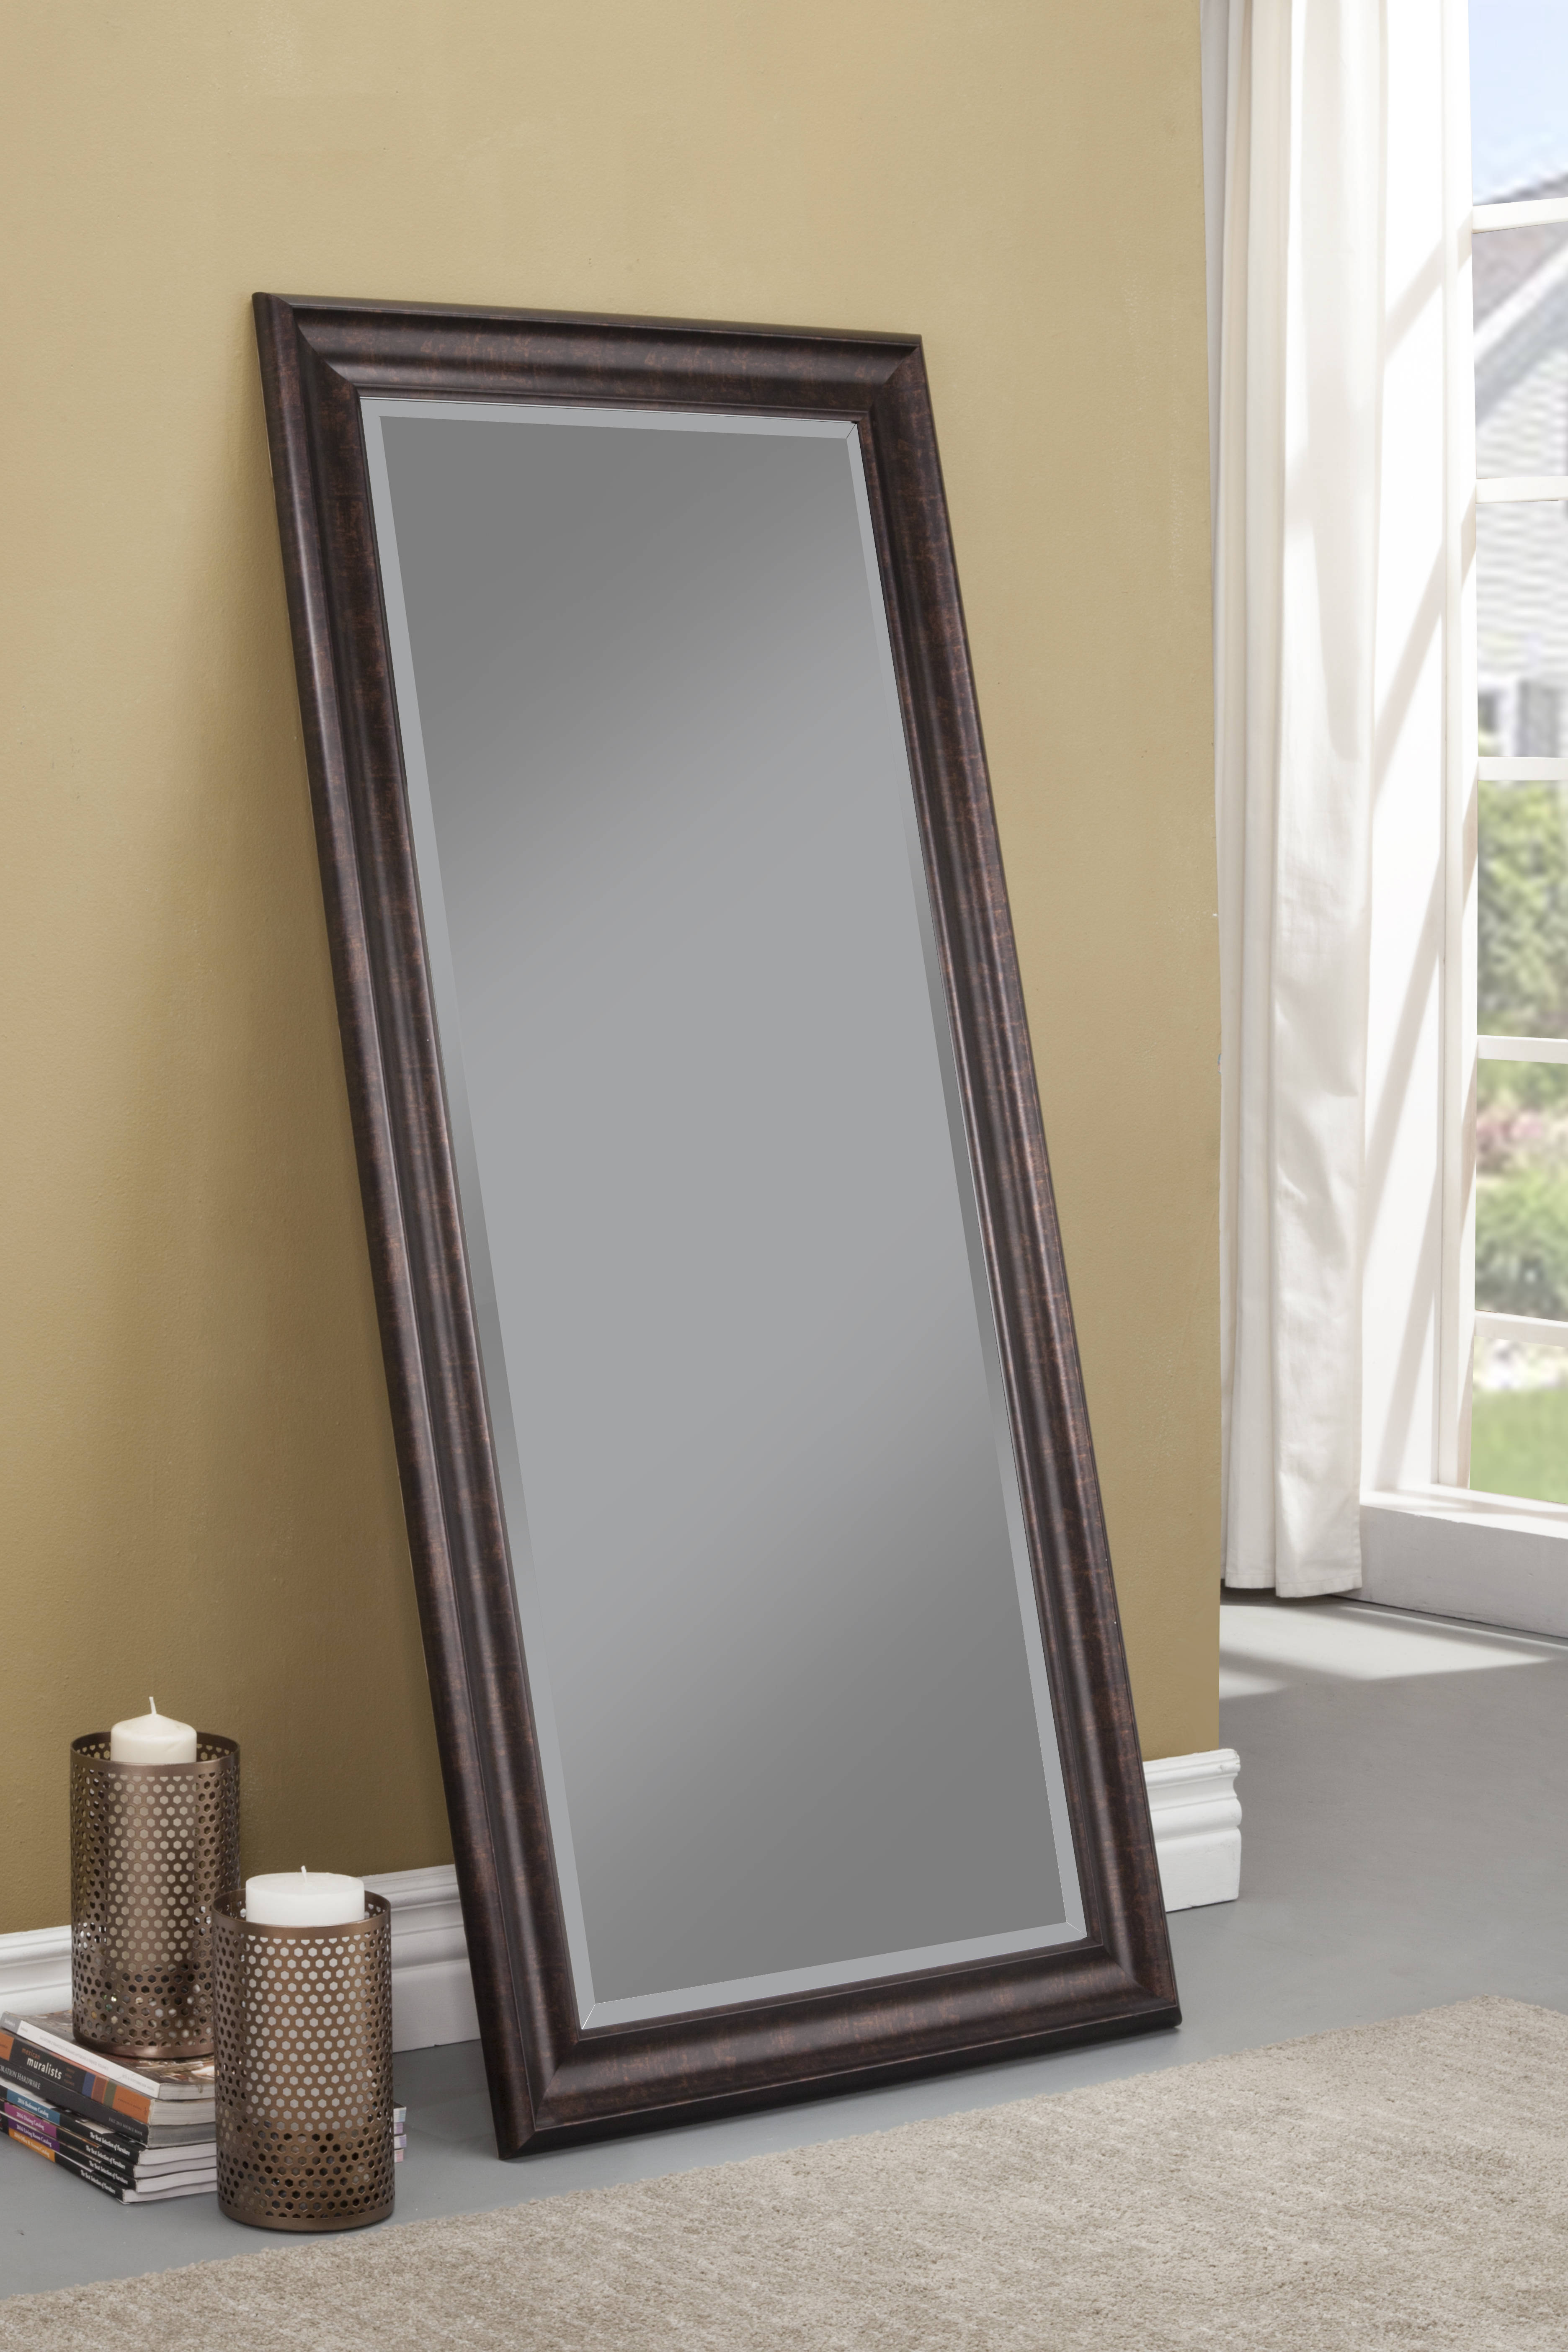 Martin Svensson Oil Rubbed Bronze Full Leaner Mirror The Classy Home